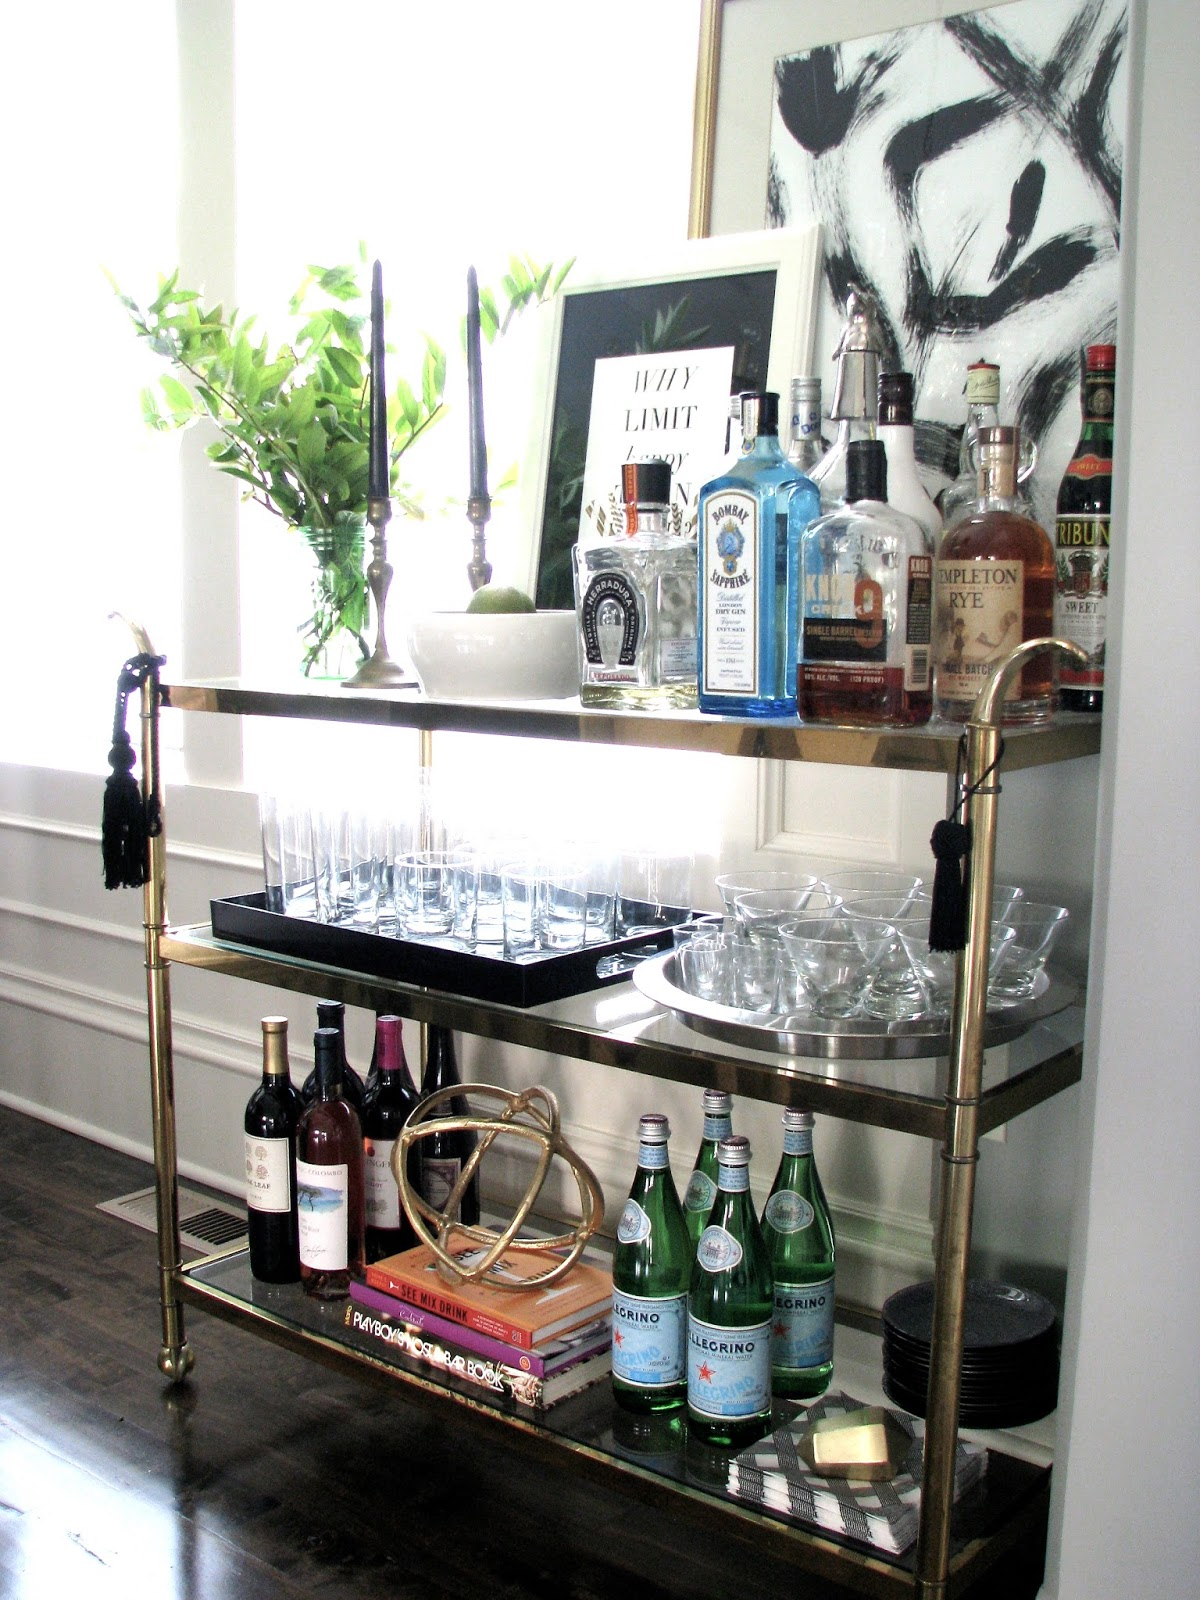 Life love larson fall home tour 2015 for Mini bar decorating ideas